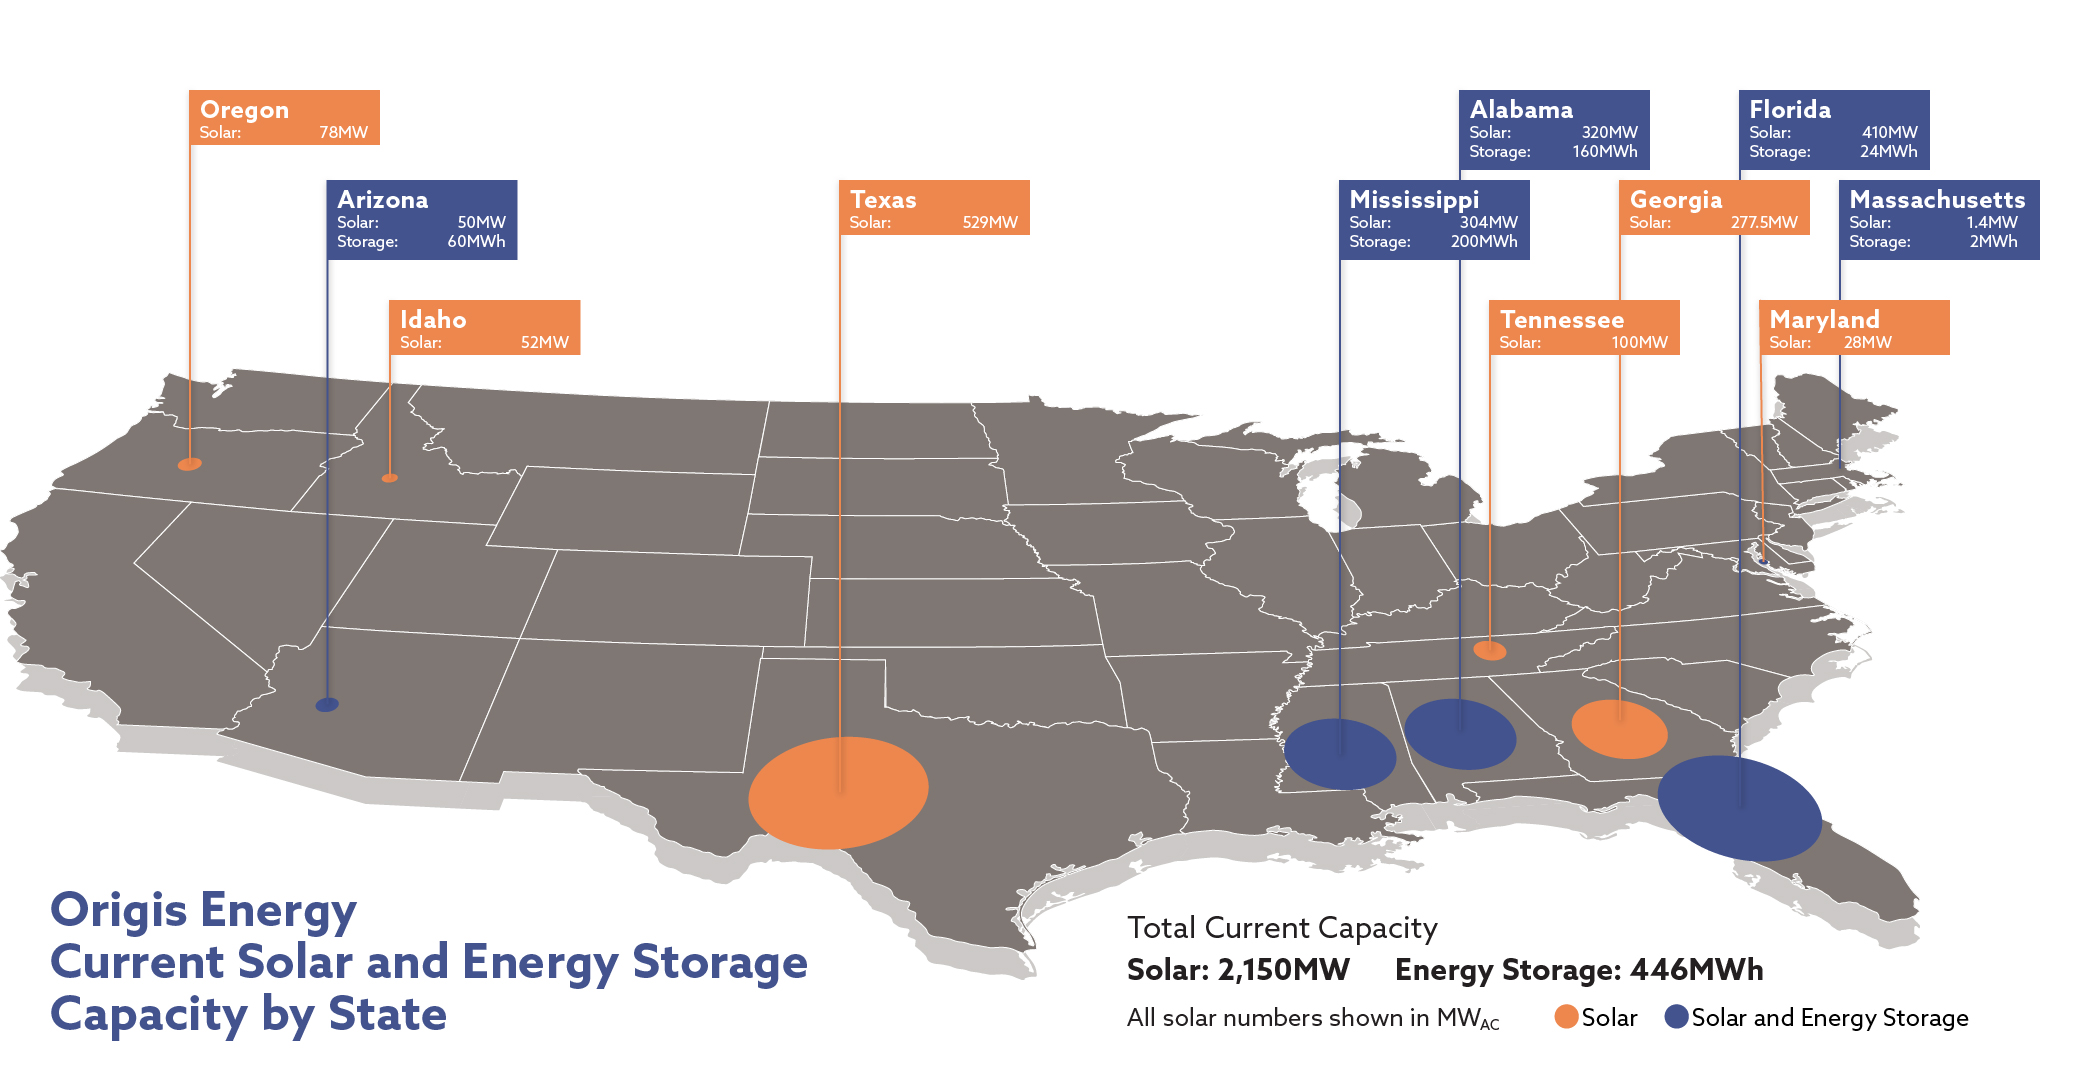 Origis Energy US capacity map